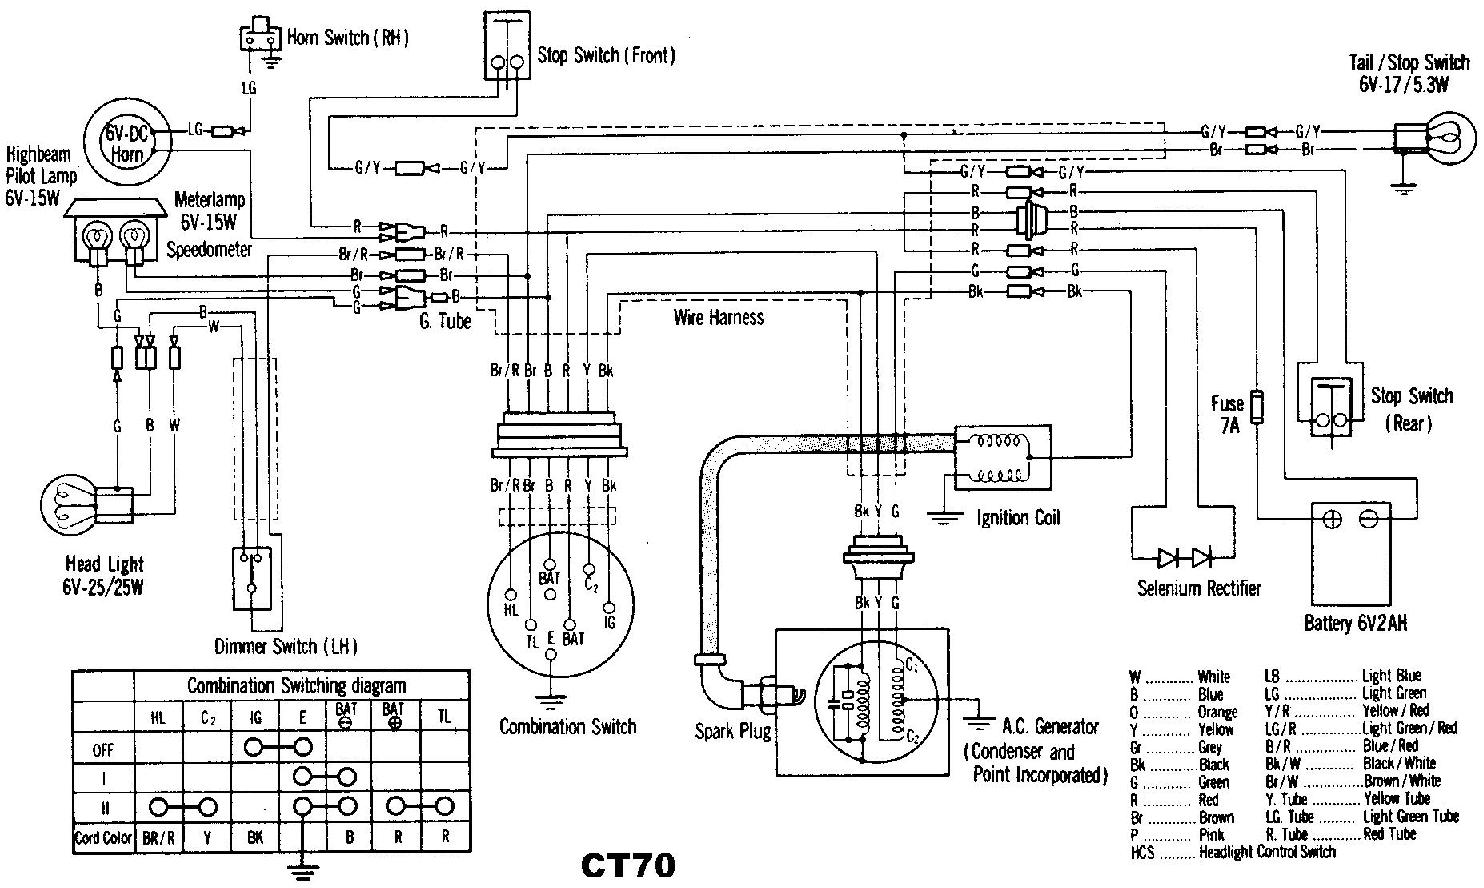 dratv_2269_123803613 honda trail 70 wiring diagram honda ct90 wiring diagram \u2022 wiring Wiring-Diagram 1979 Honda CT90 at reclaimingppi.co